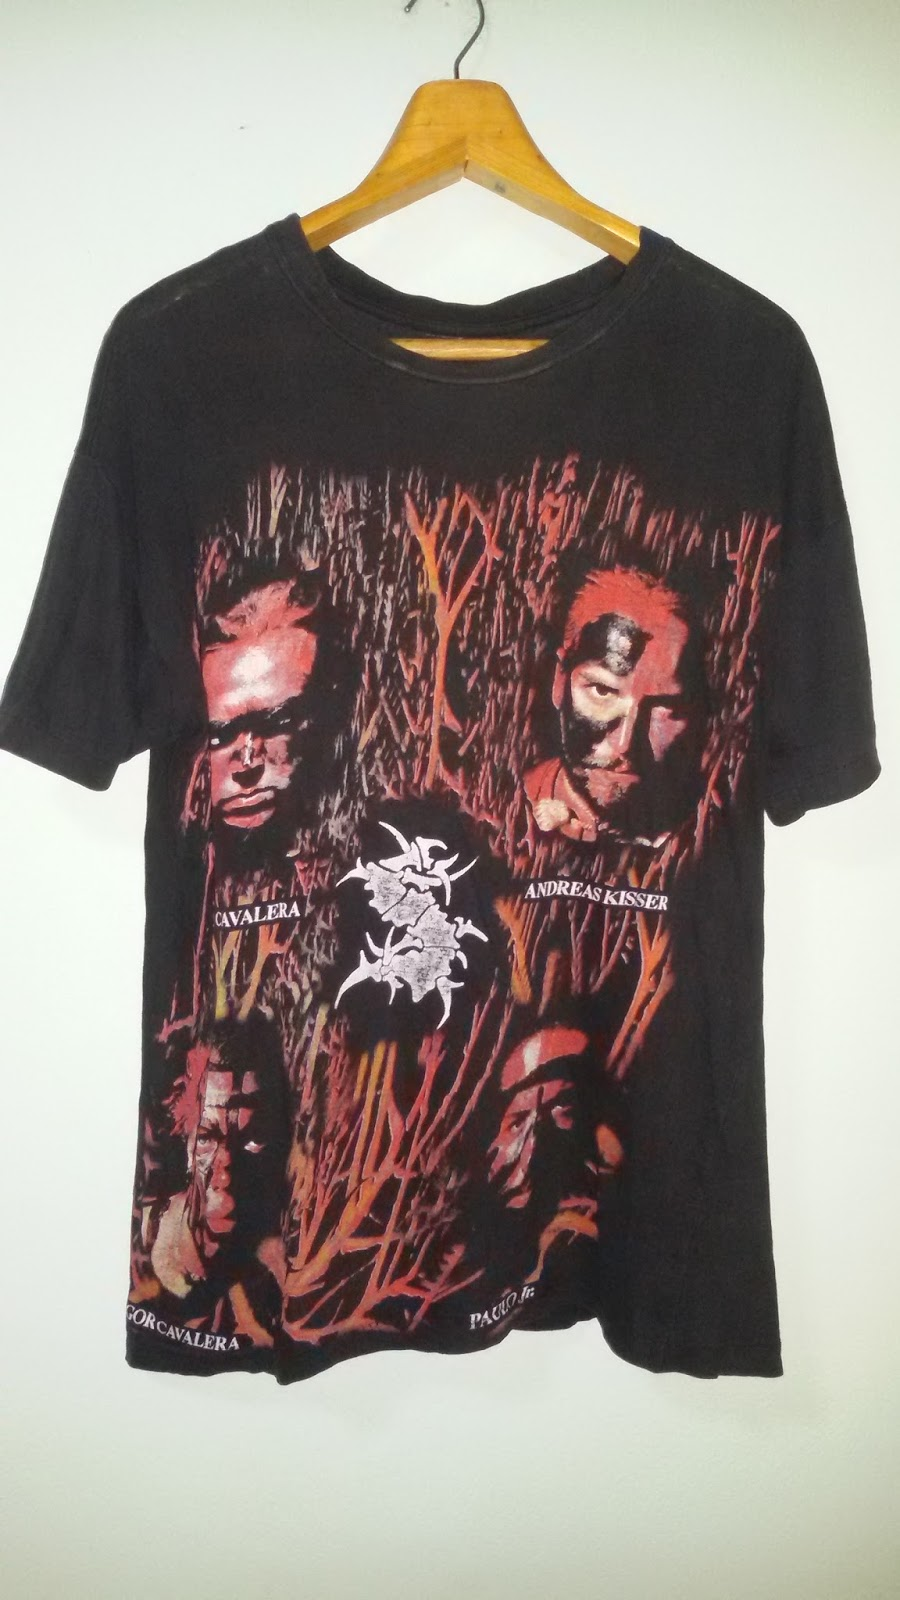 Switch Vintage Soldvintage Sepultura 80s Tshirt Band Members Line Tendencies 63 Iron Hitam S Up Paper Thin